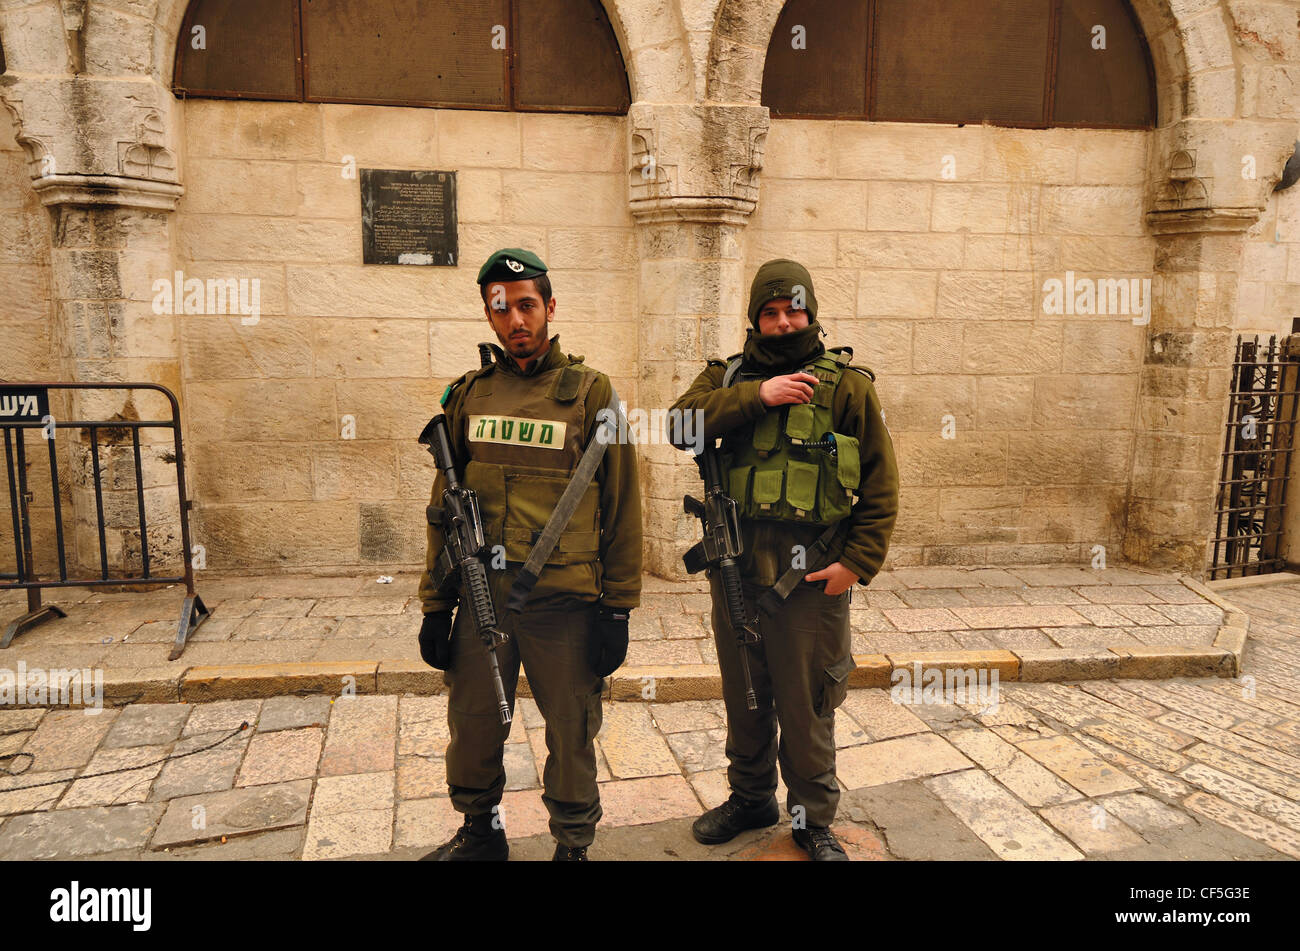 Members of the Israeli Border Police in the old city of Jerusalem, Israel. - Stock Image